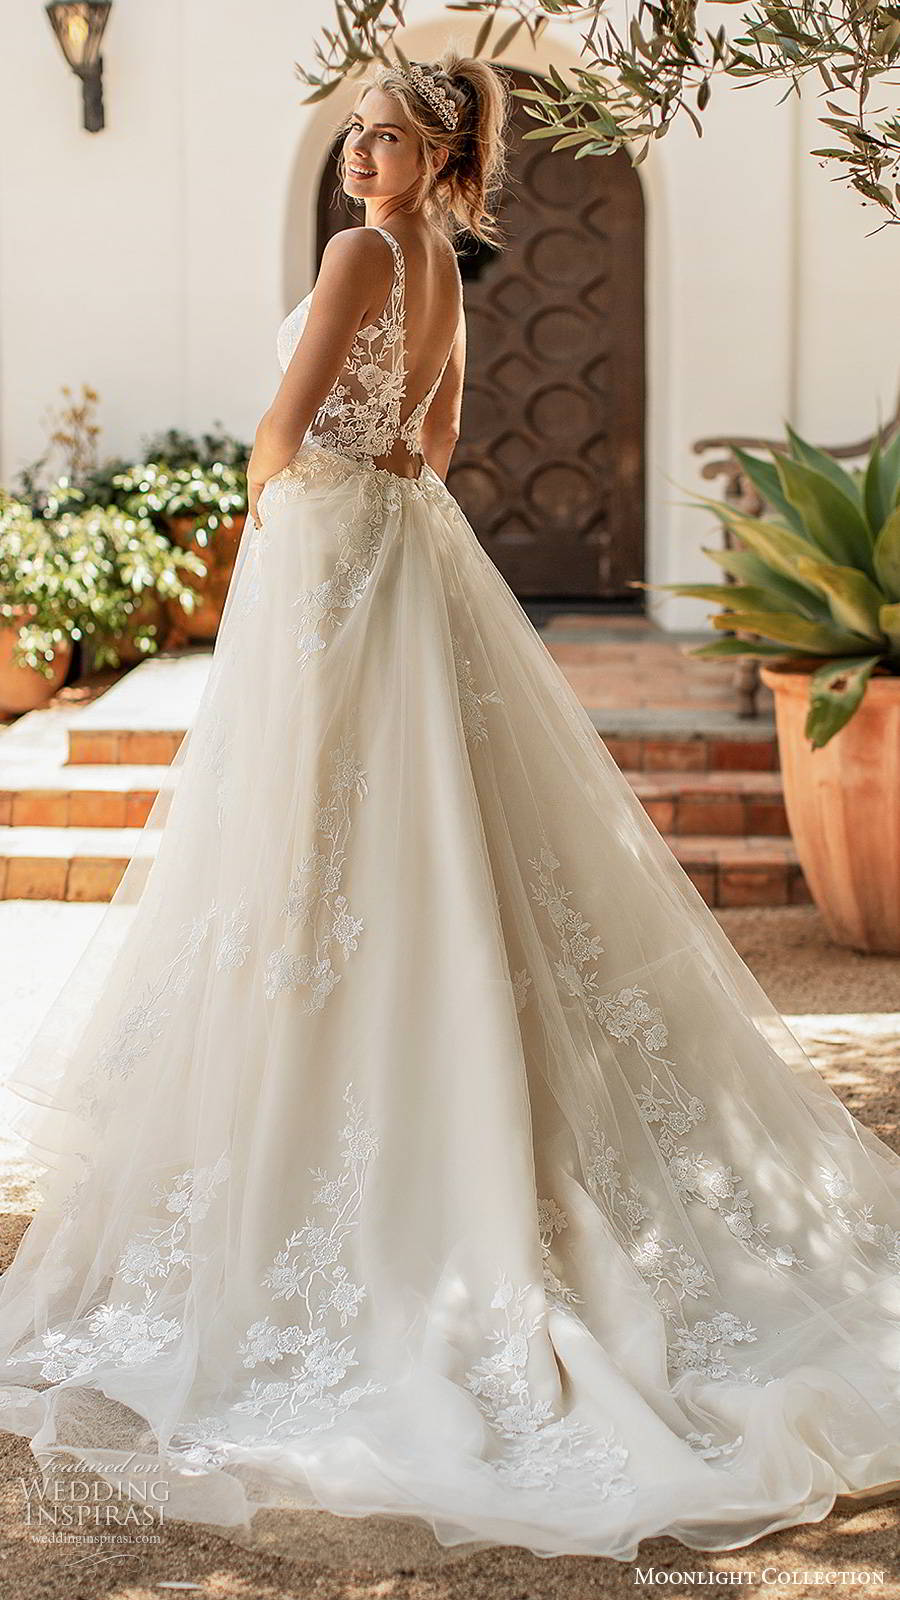 moonlight collection spring 2020 bridal sleeveless straps plunging v neckline fully embellished romantic lace a line ball gown wedding dress v back chapel train (1) bv